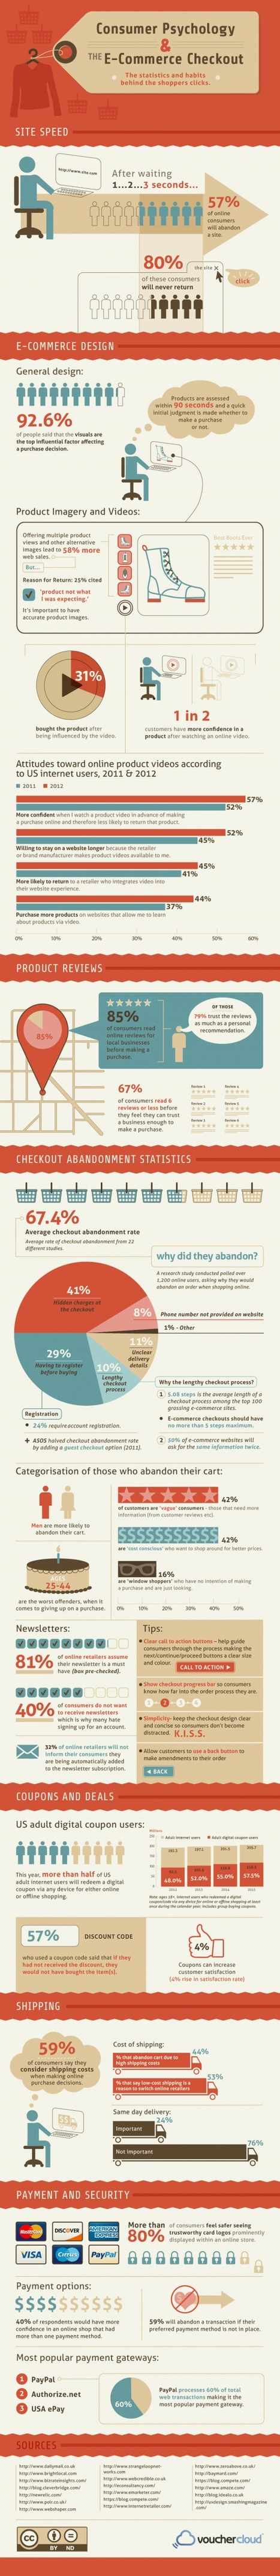 The biggest barriers to online purchase? [Infographic] - Smart Insights Digital Marketing Advice | e-commerce | Scoop.it